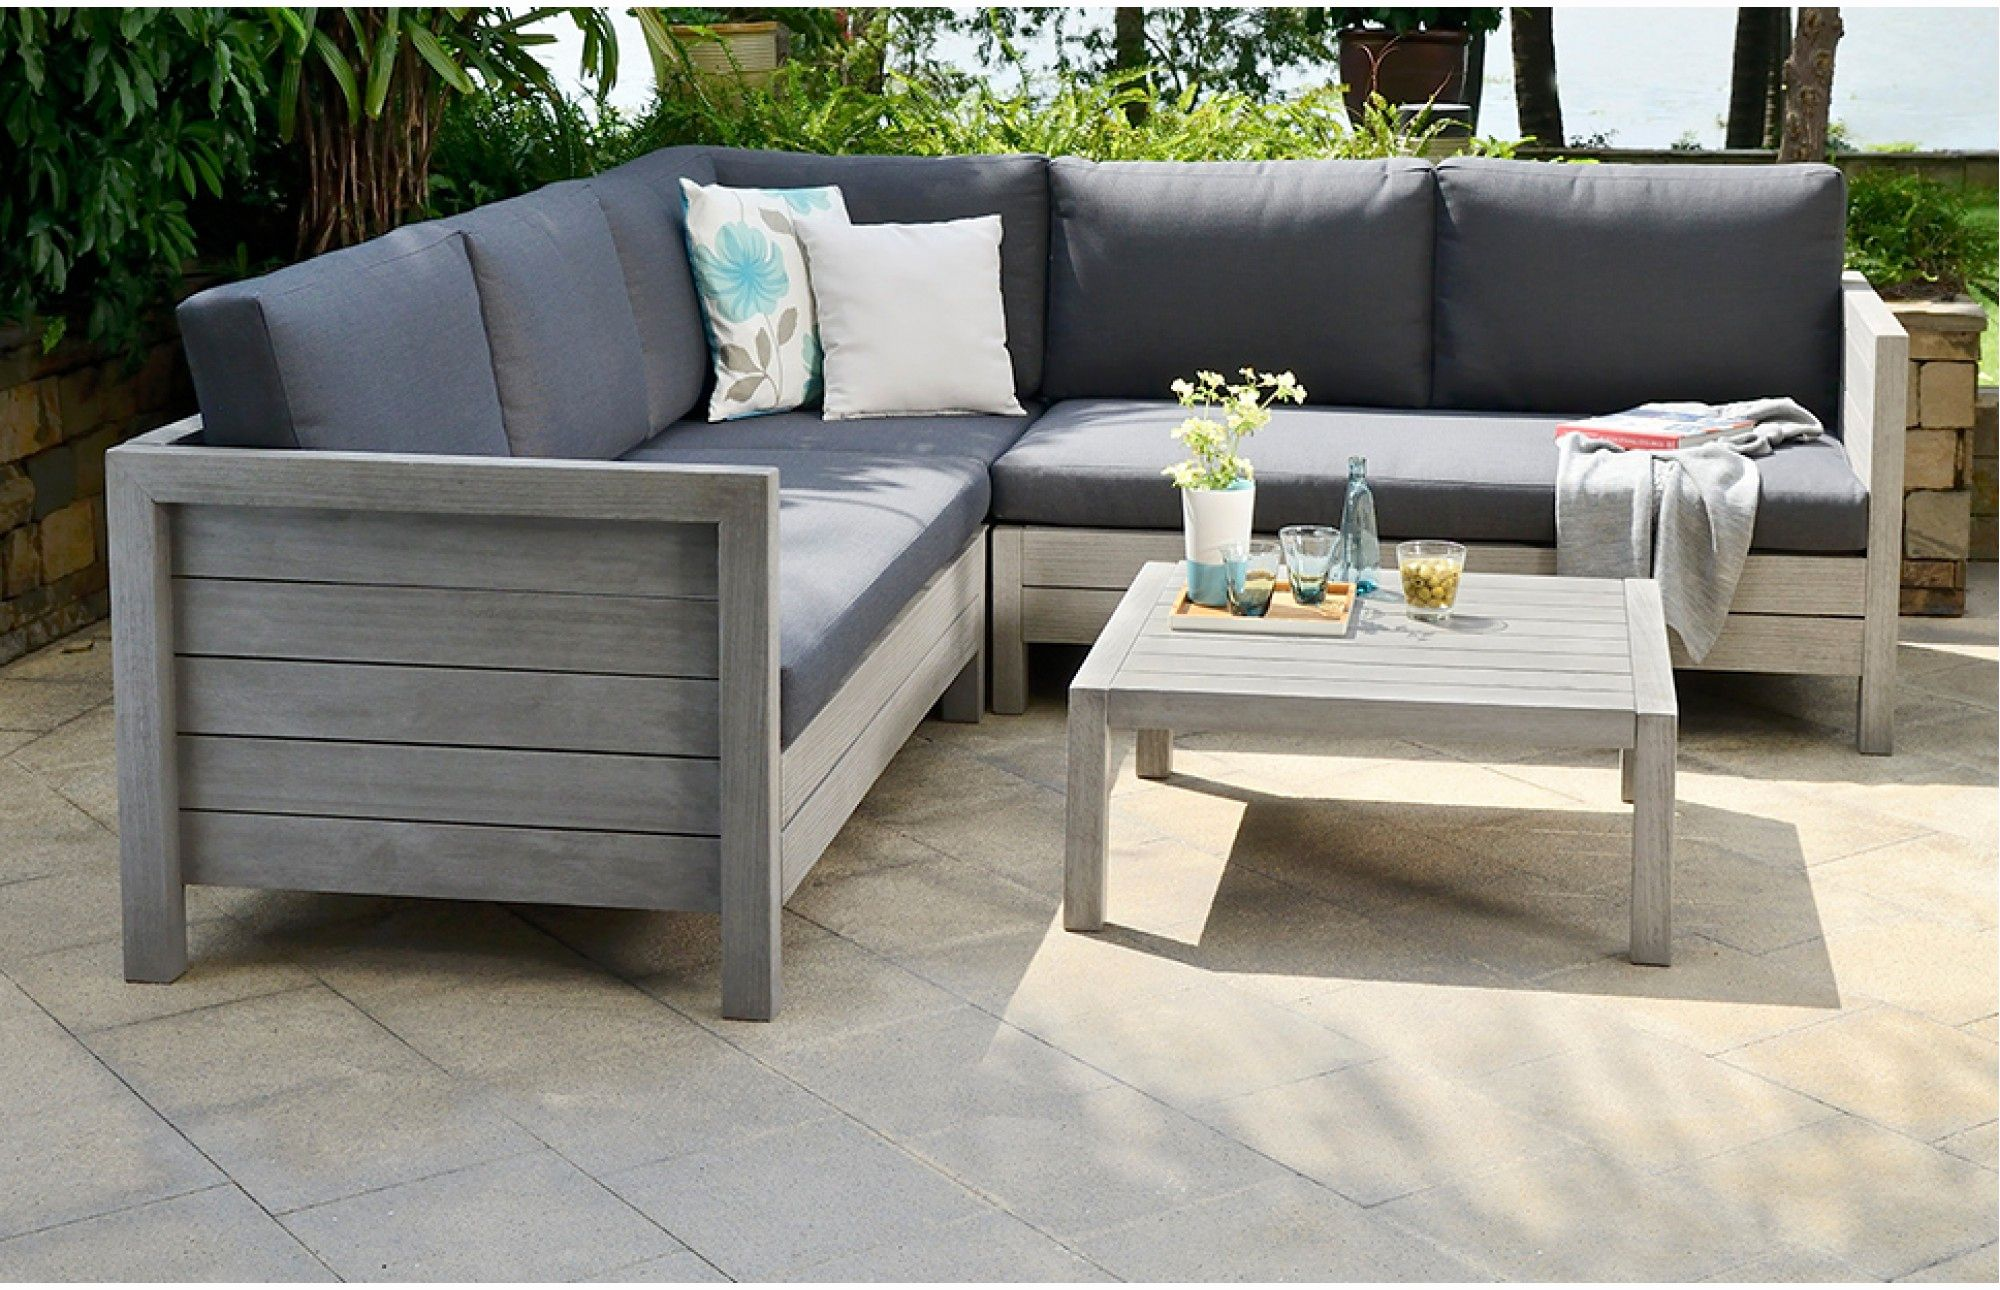 Good Corner Sofa Outdoor Furniture Image Phenomenal Corner